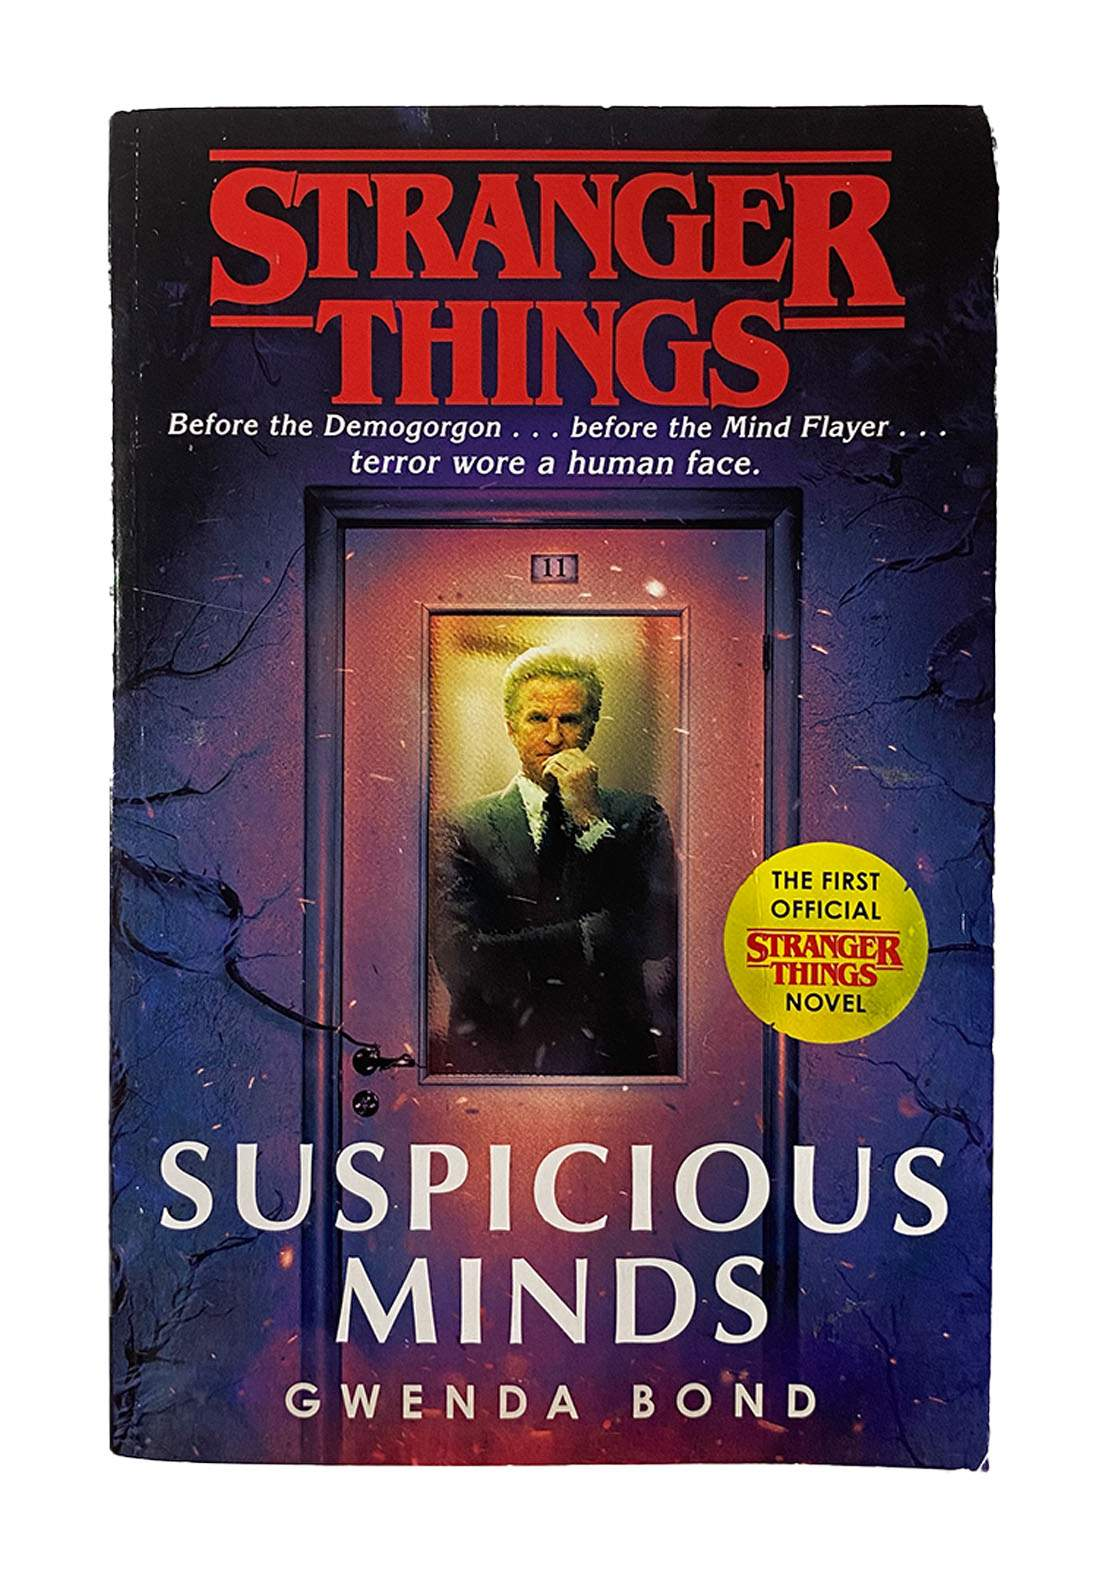 Stranger Things -suspicious minds